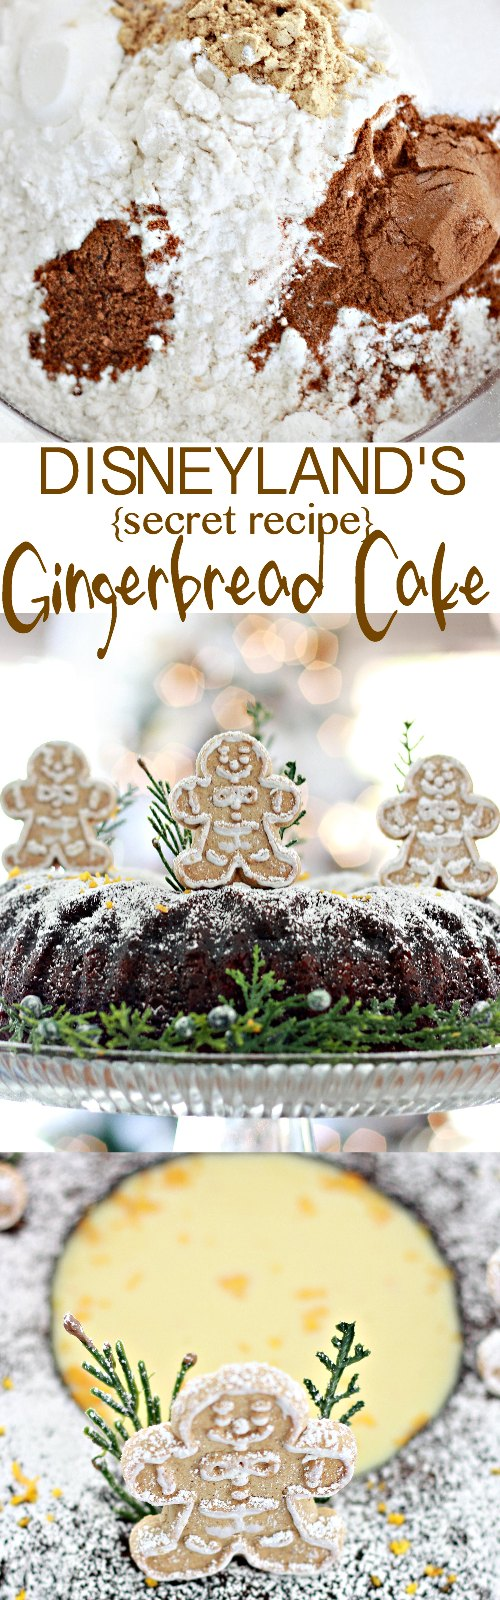 Disneyland's Gingerbread Cake with Orange Sauce Recipe